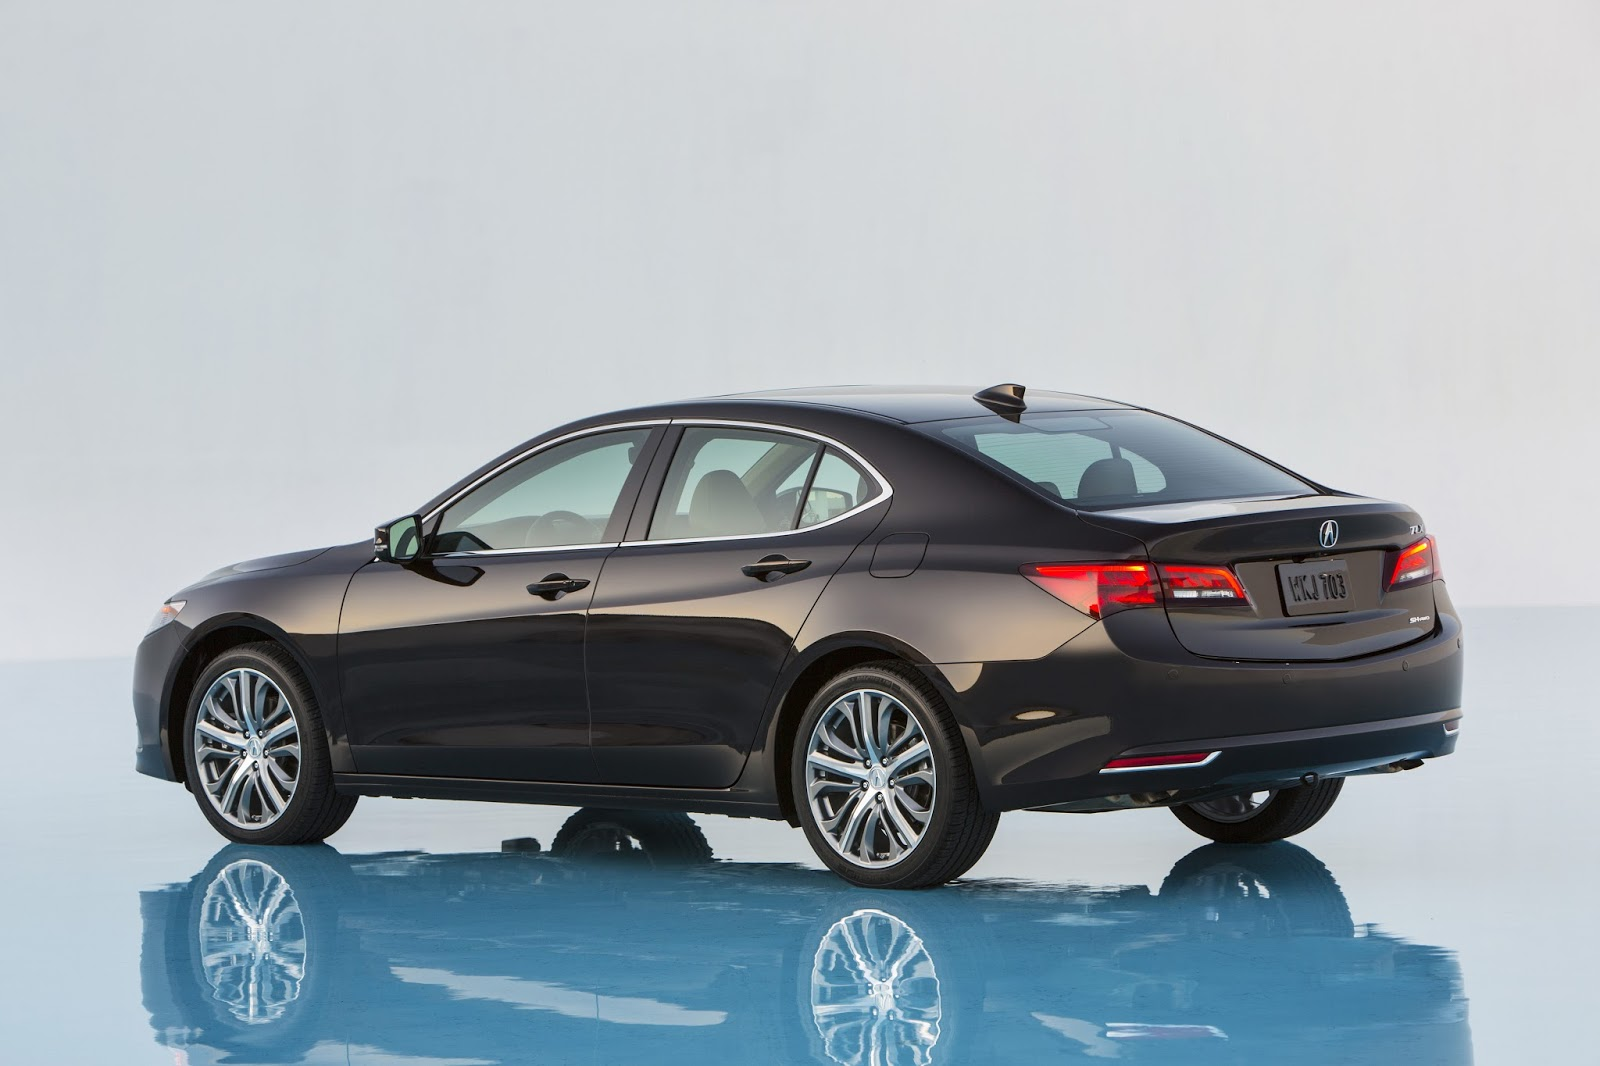 2014 - [Acura] TLX - Page 2 Acura-2015-TLX-11